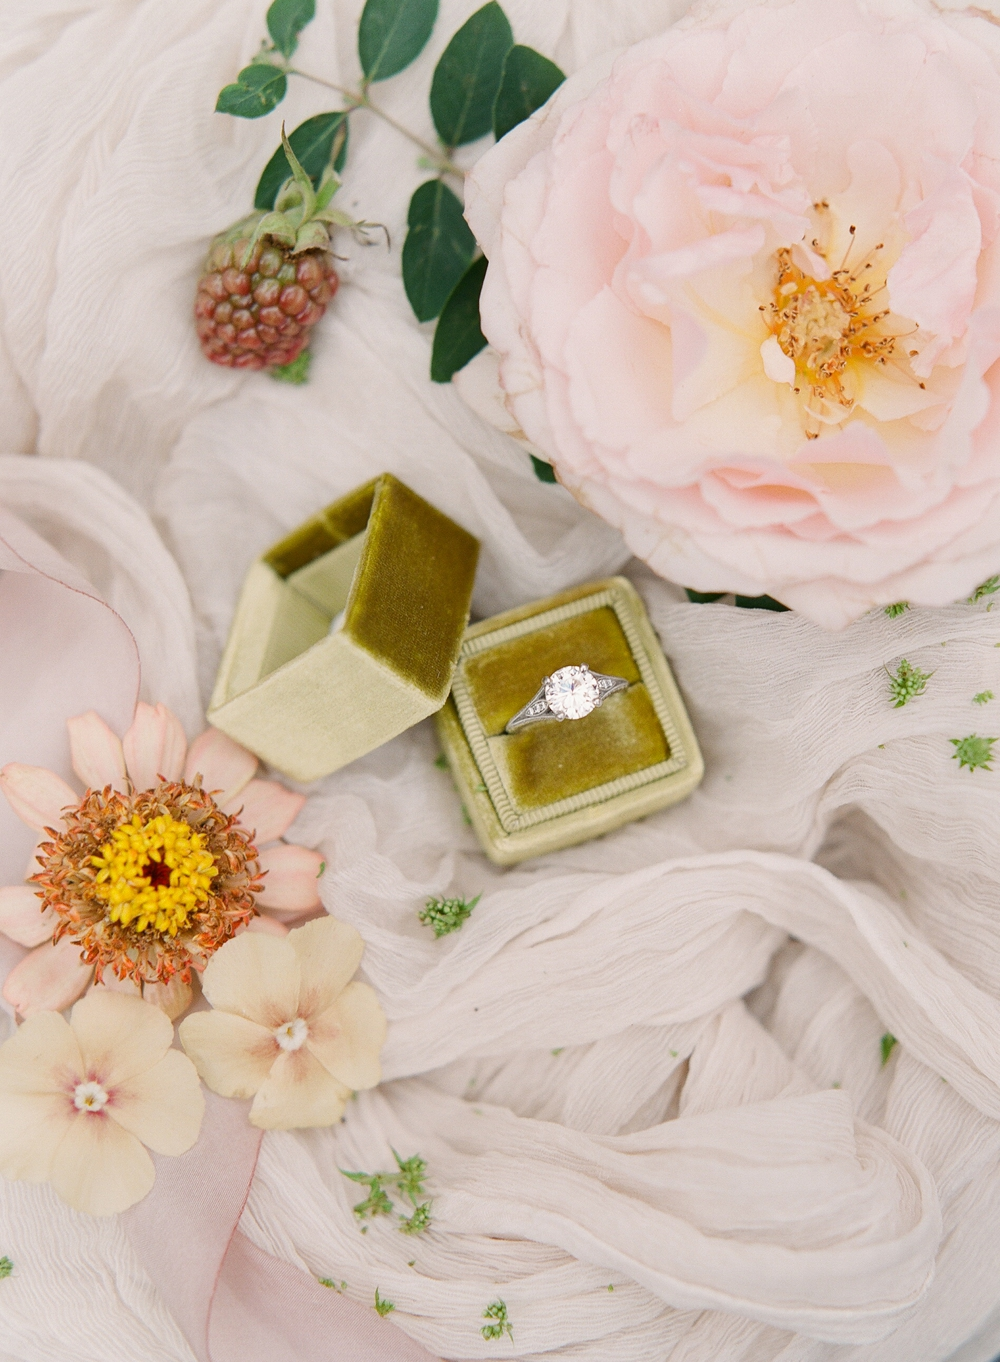 diamond engagement ring in mustard yellow velvet ring box surrounded by pink flowers and berries